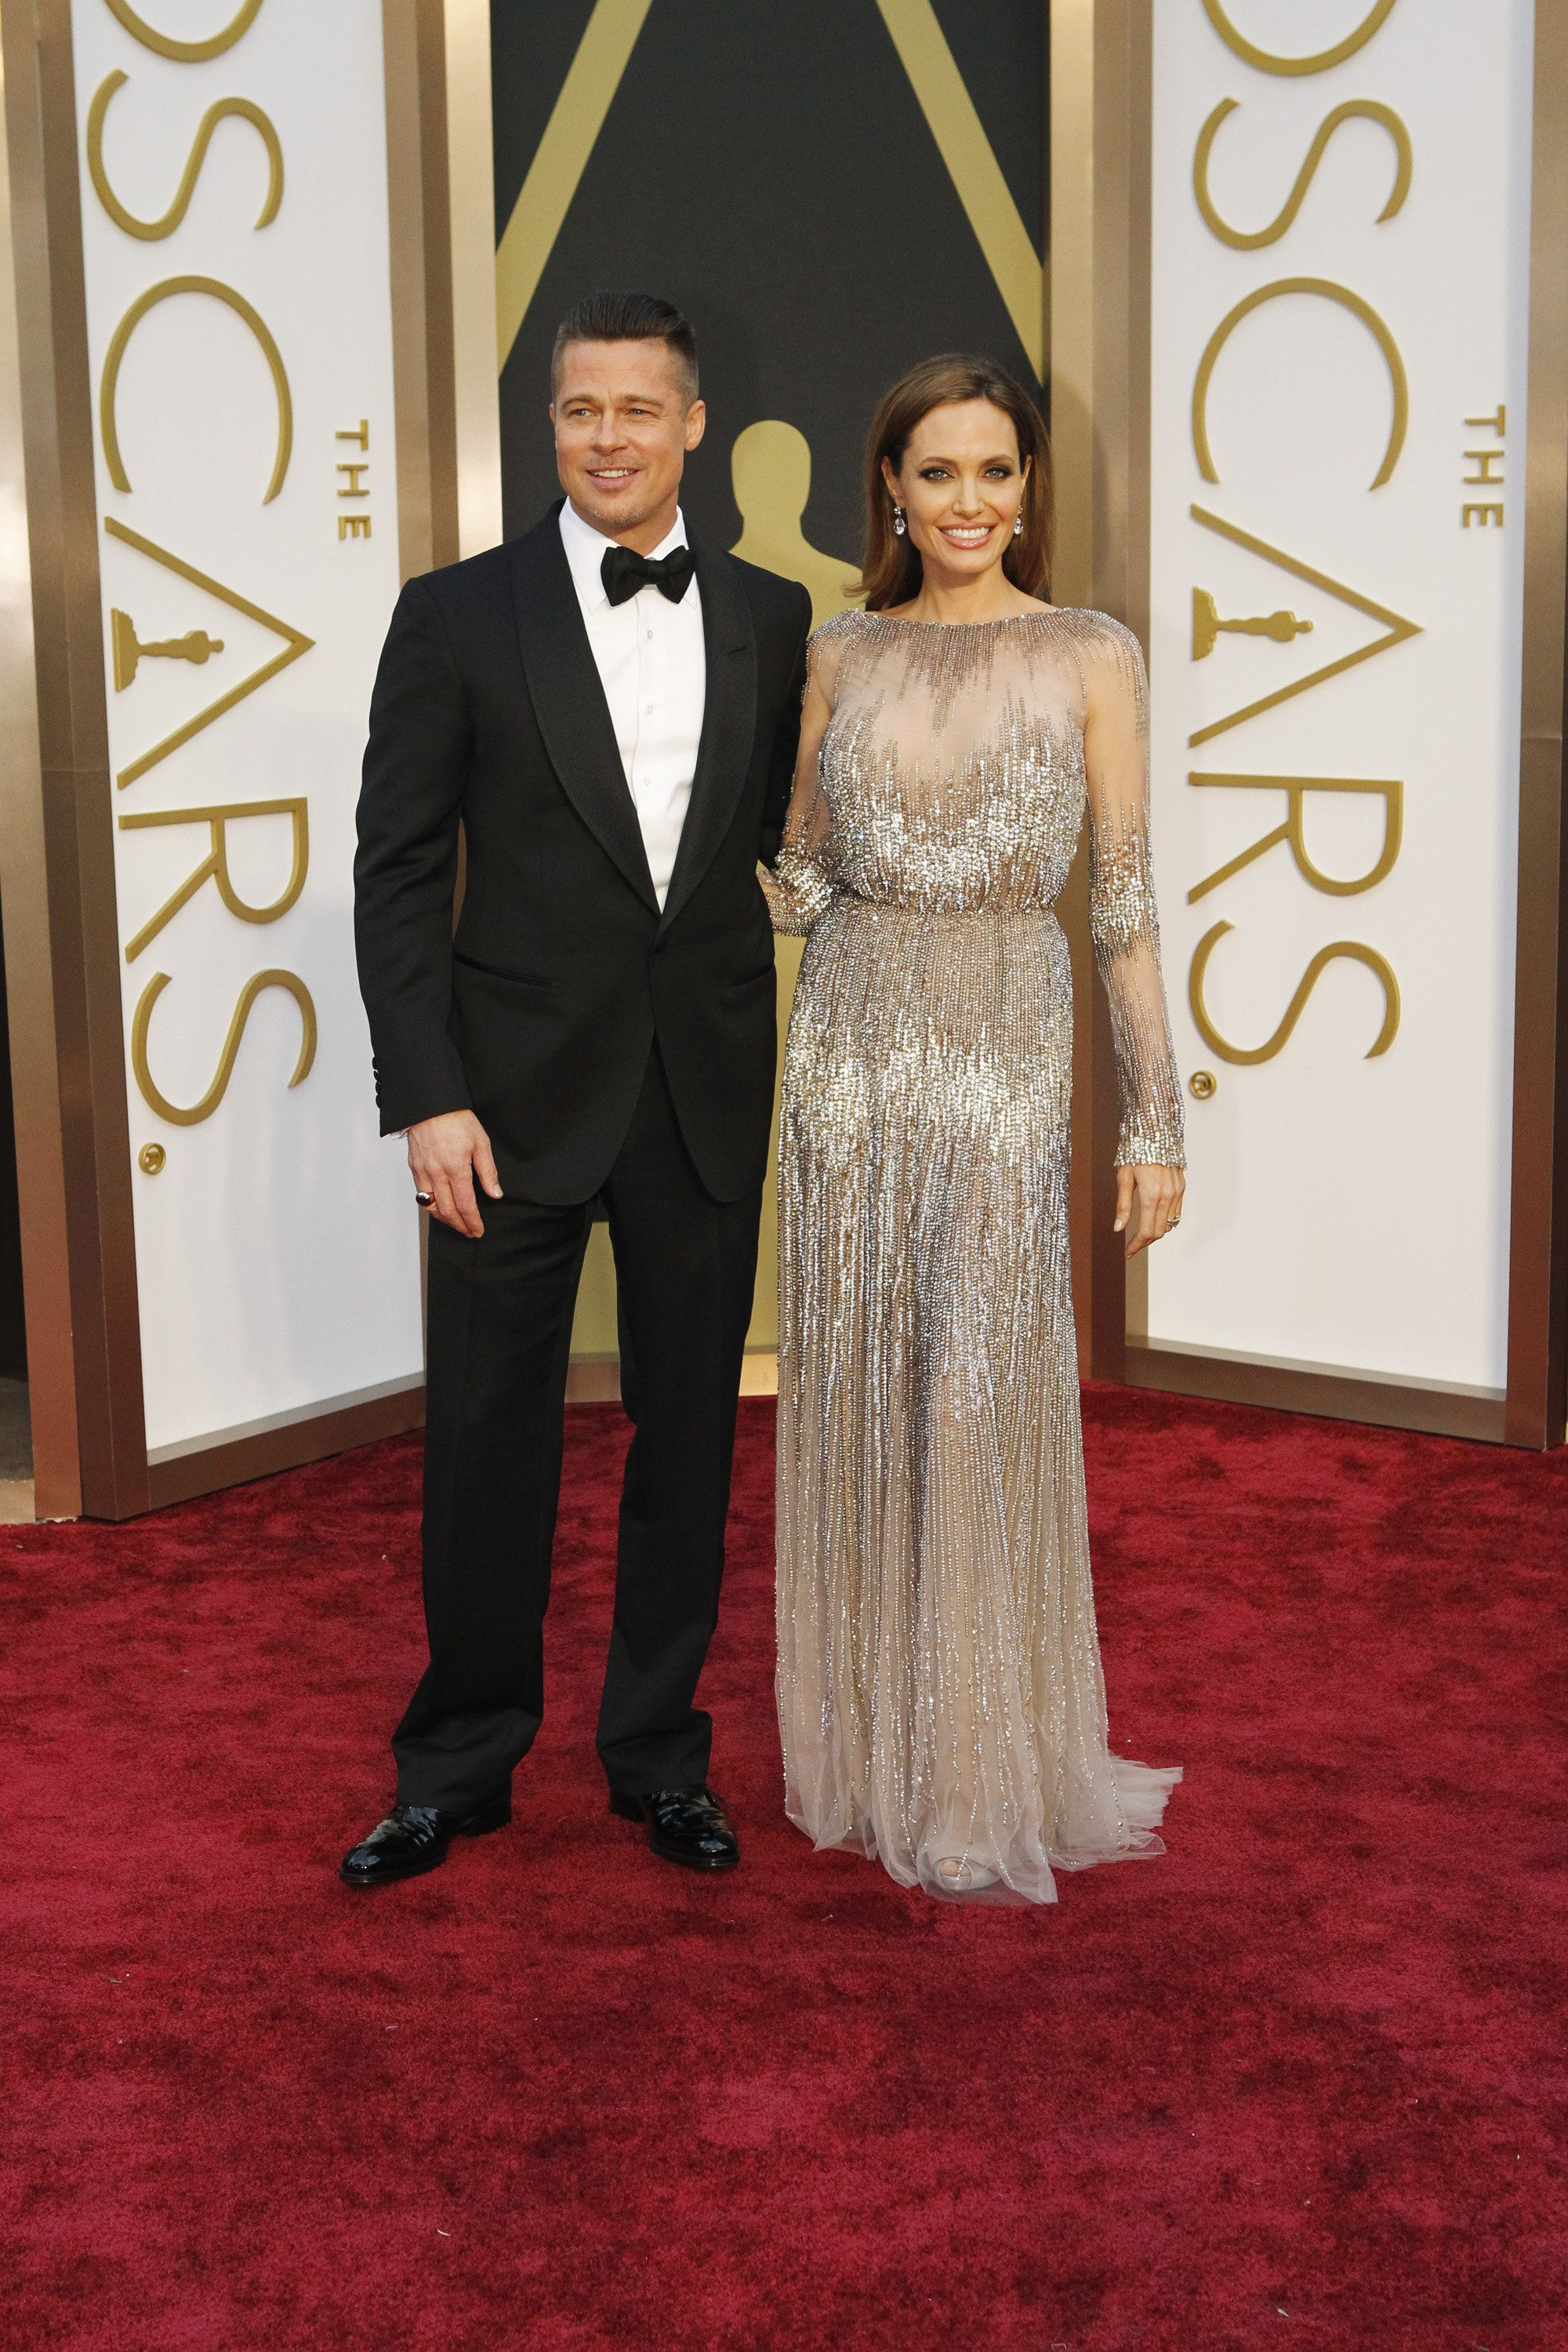 Oscar Party Ideas 7 Ways To Throw The Perfect Party Angelina Jolie Red Carpet Red Carpet Oscars Red Carpet Fashion